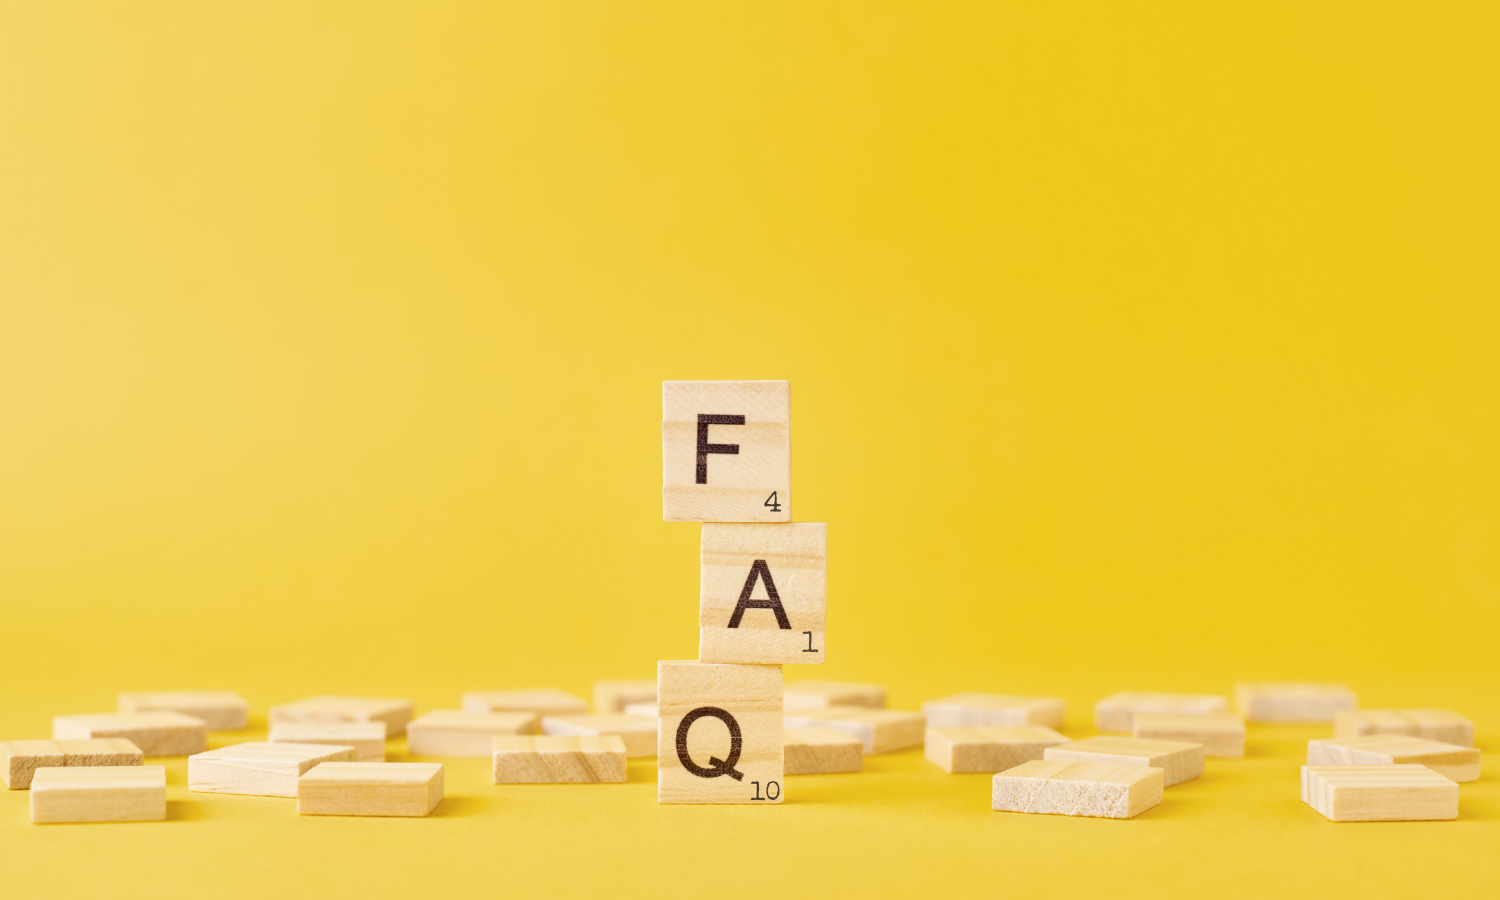 image with gold background and wooden scrabble tiles spelling out FAQ